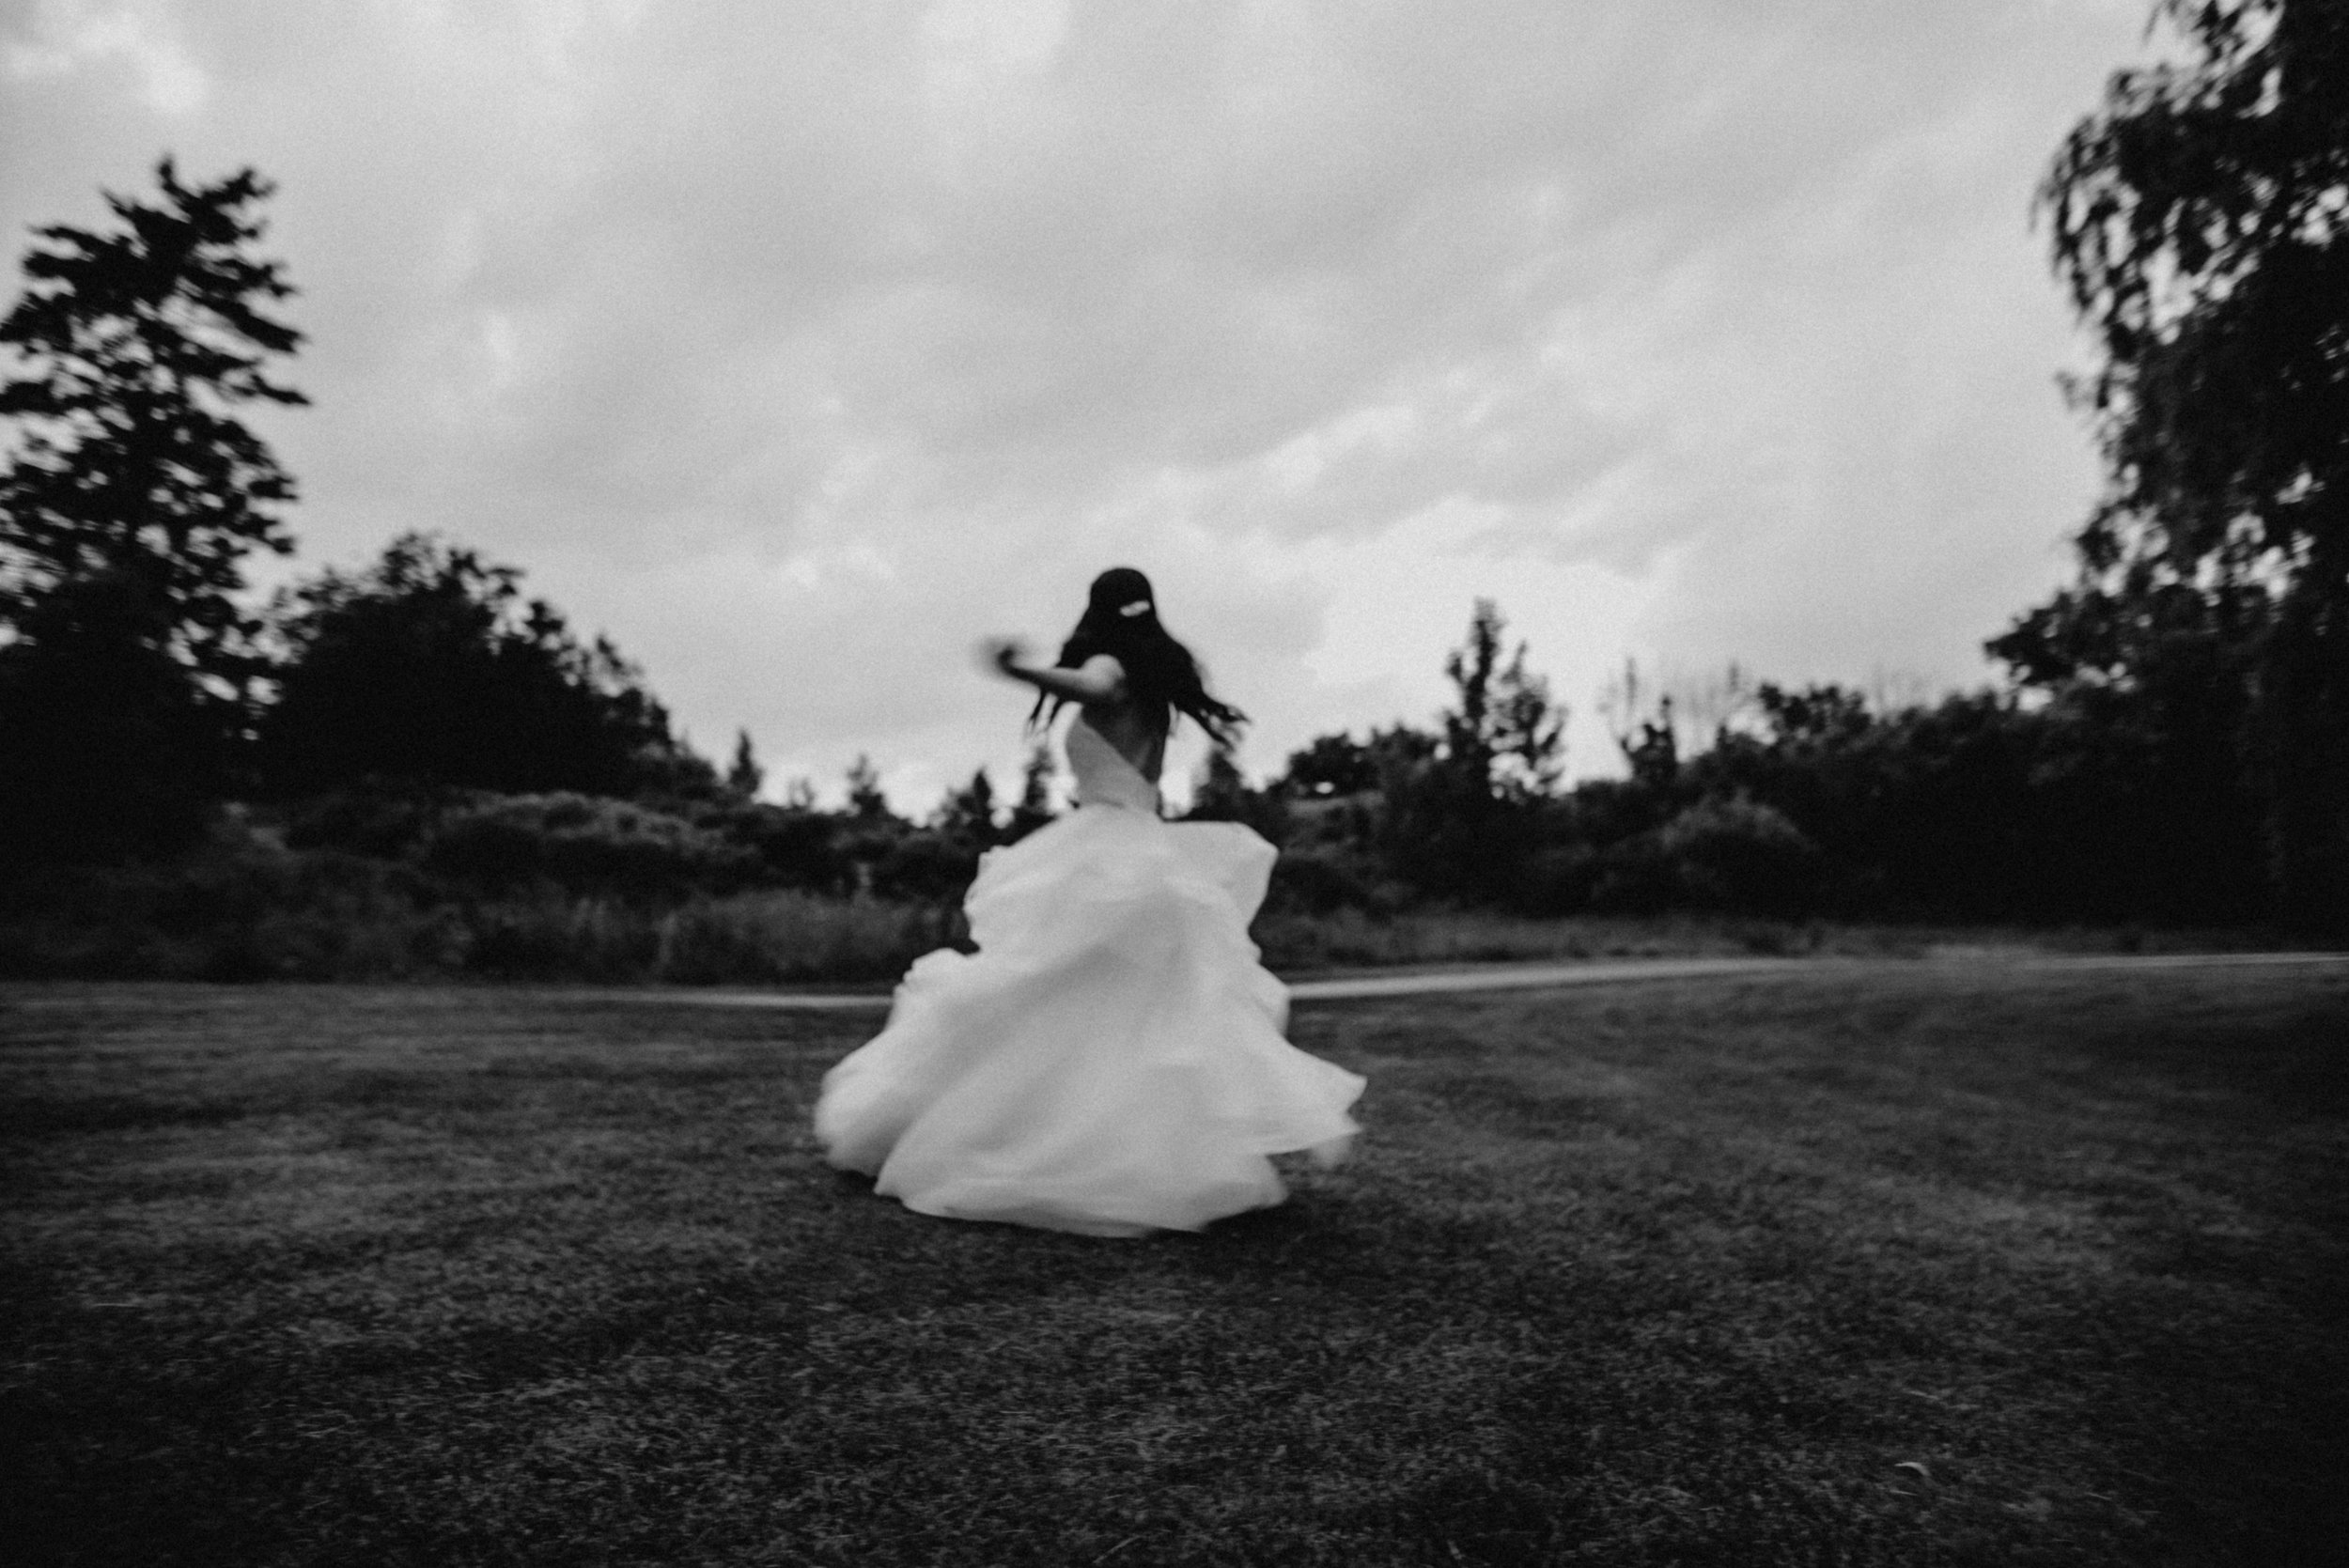 photographe_mariage_outaouais_gatineau_ottawa_wedding_photographer_candid_lifestyle_documentary_natasha_liard_photographs (57).jpg